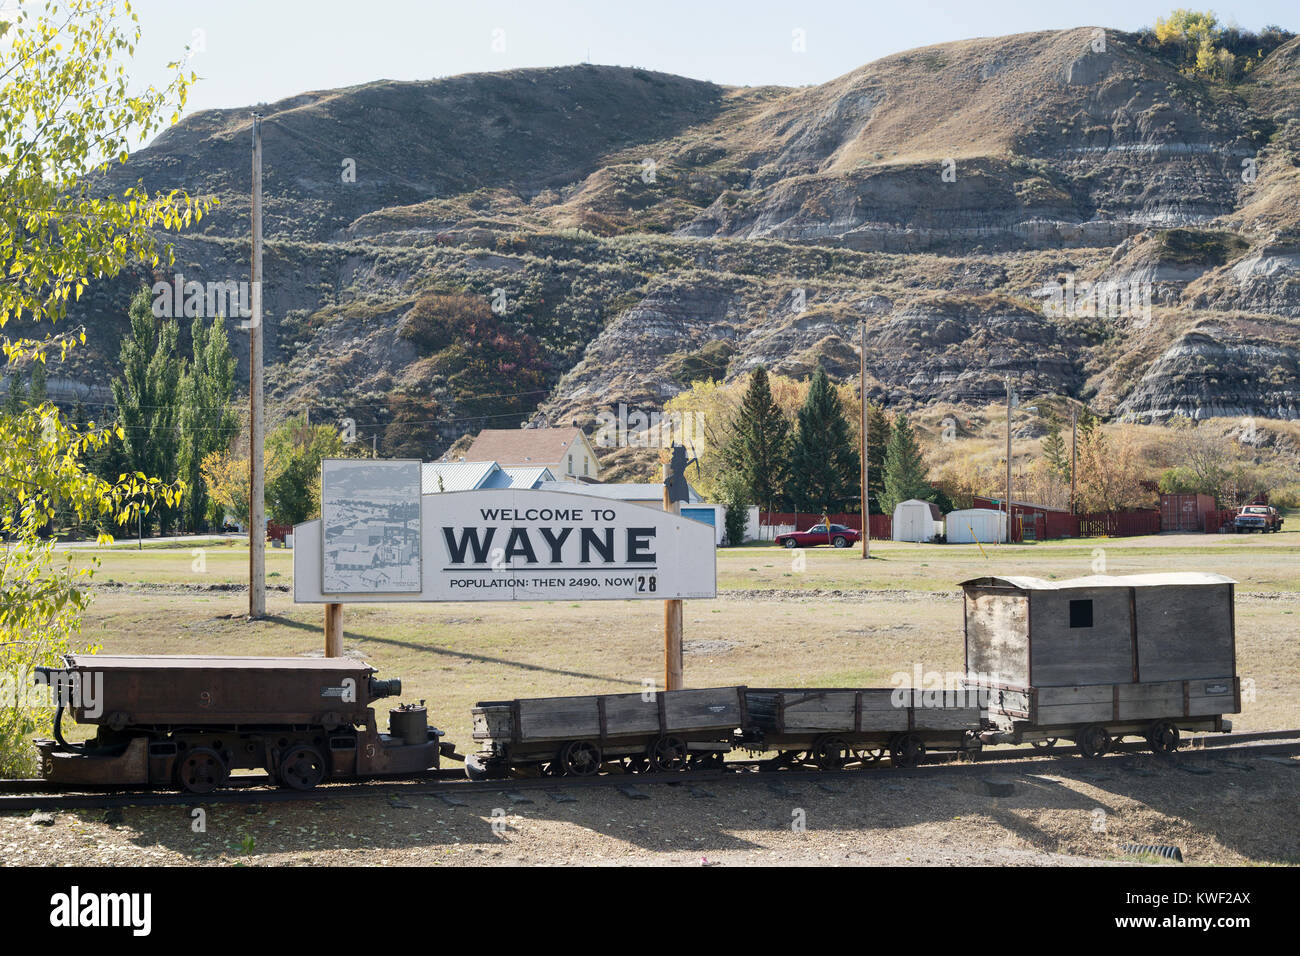 Wayne, a former coal mining town, with a welcome sign showing population decrease - 'Population: Then 2490 now - Stock Image